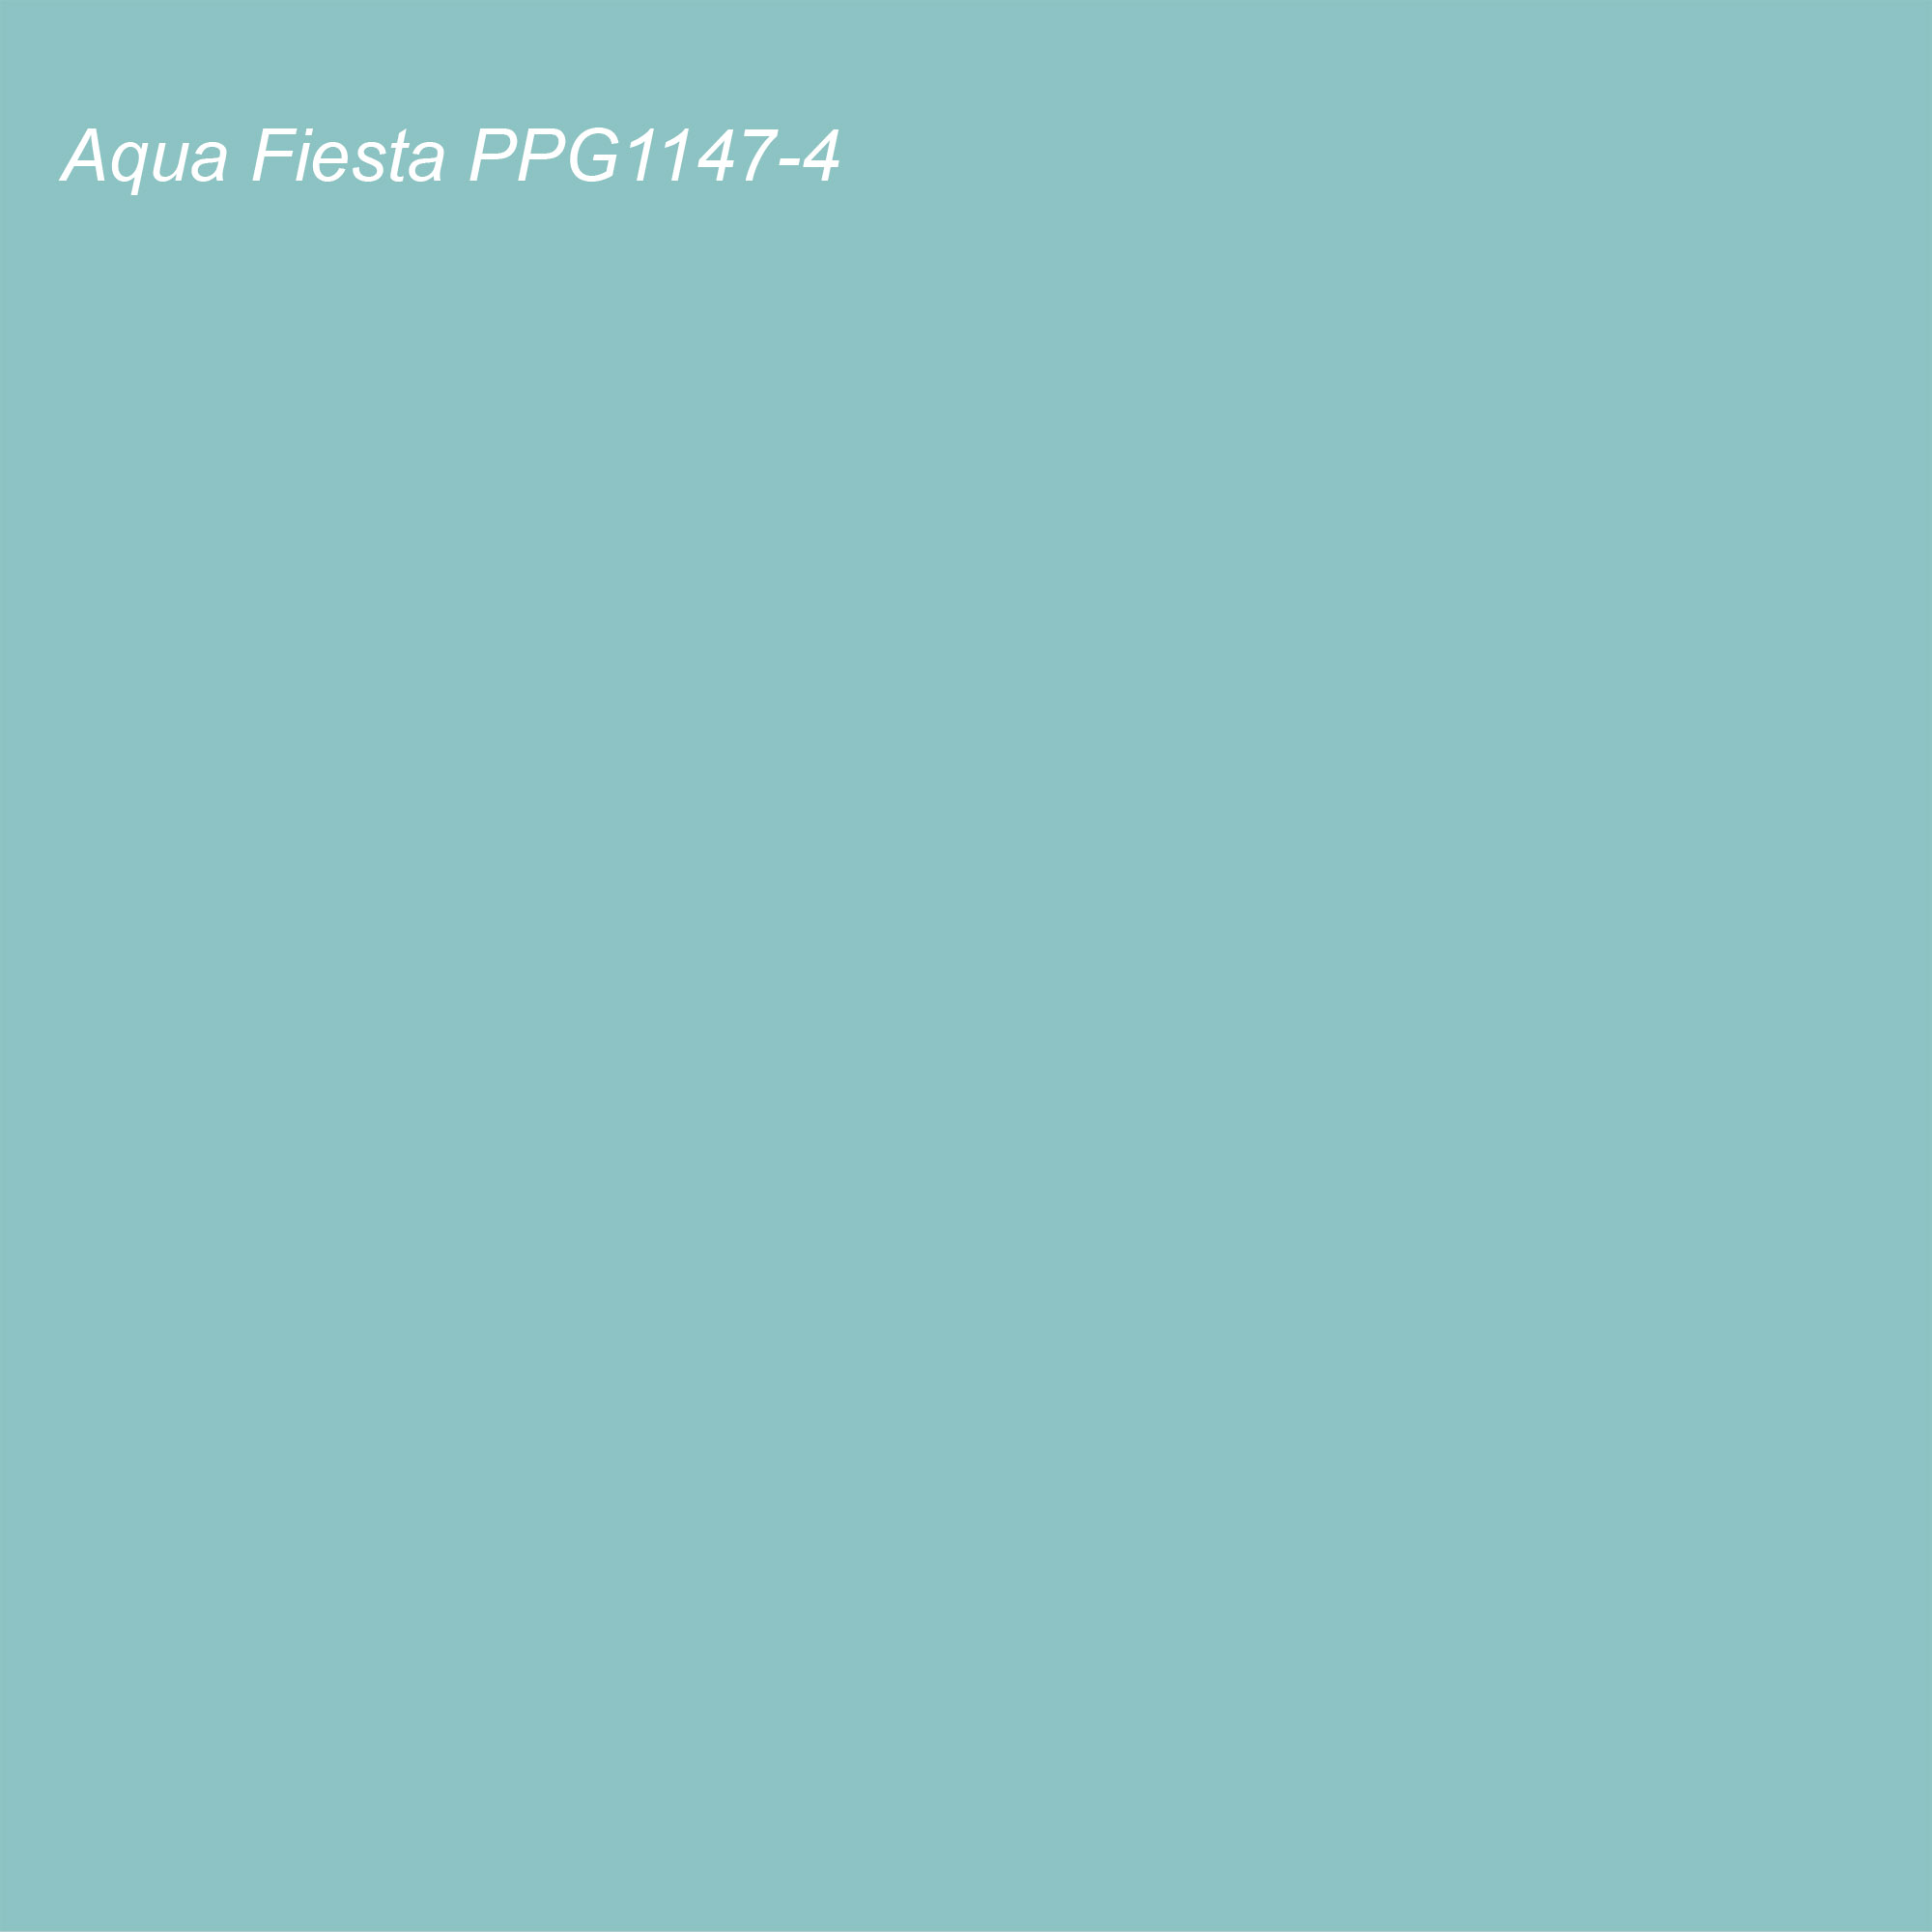 PPG - Glidden 2021 Color of the Year Aqua Fiesta PPG1147-4